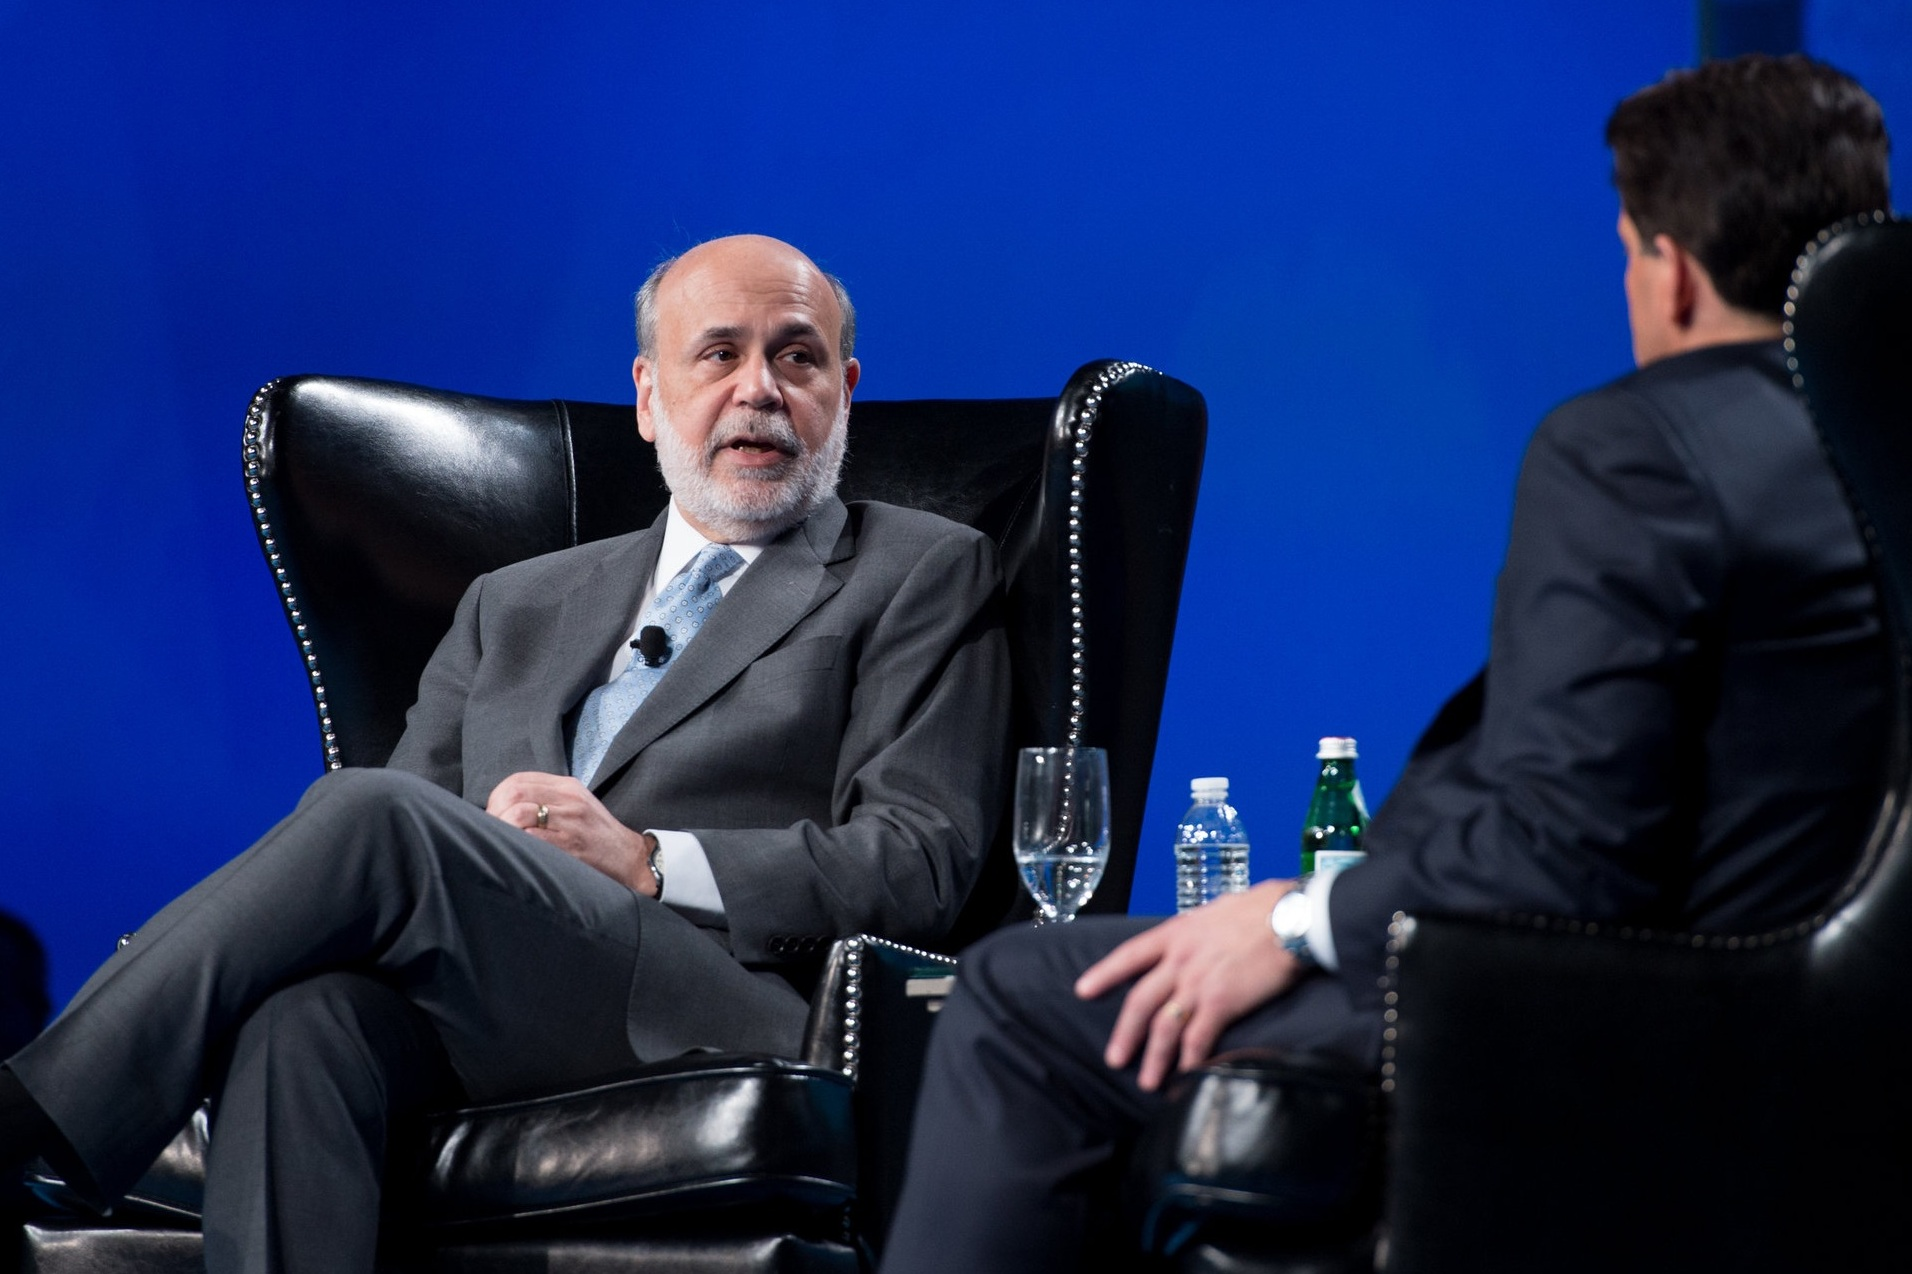 SALT 2015 - Chairman, Board of Governors of the Federal Reserve System (2006-2014) DR. BEN S. BERNANKE with SkyBridge Founder & Co-Managing Partner ANTHONY SCARAMUCCI